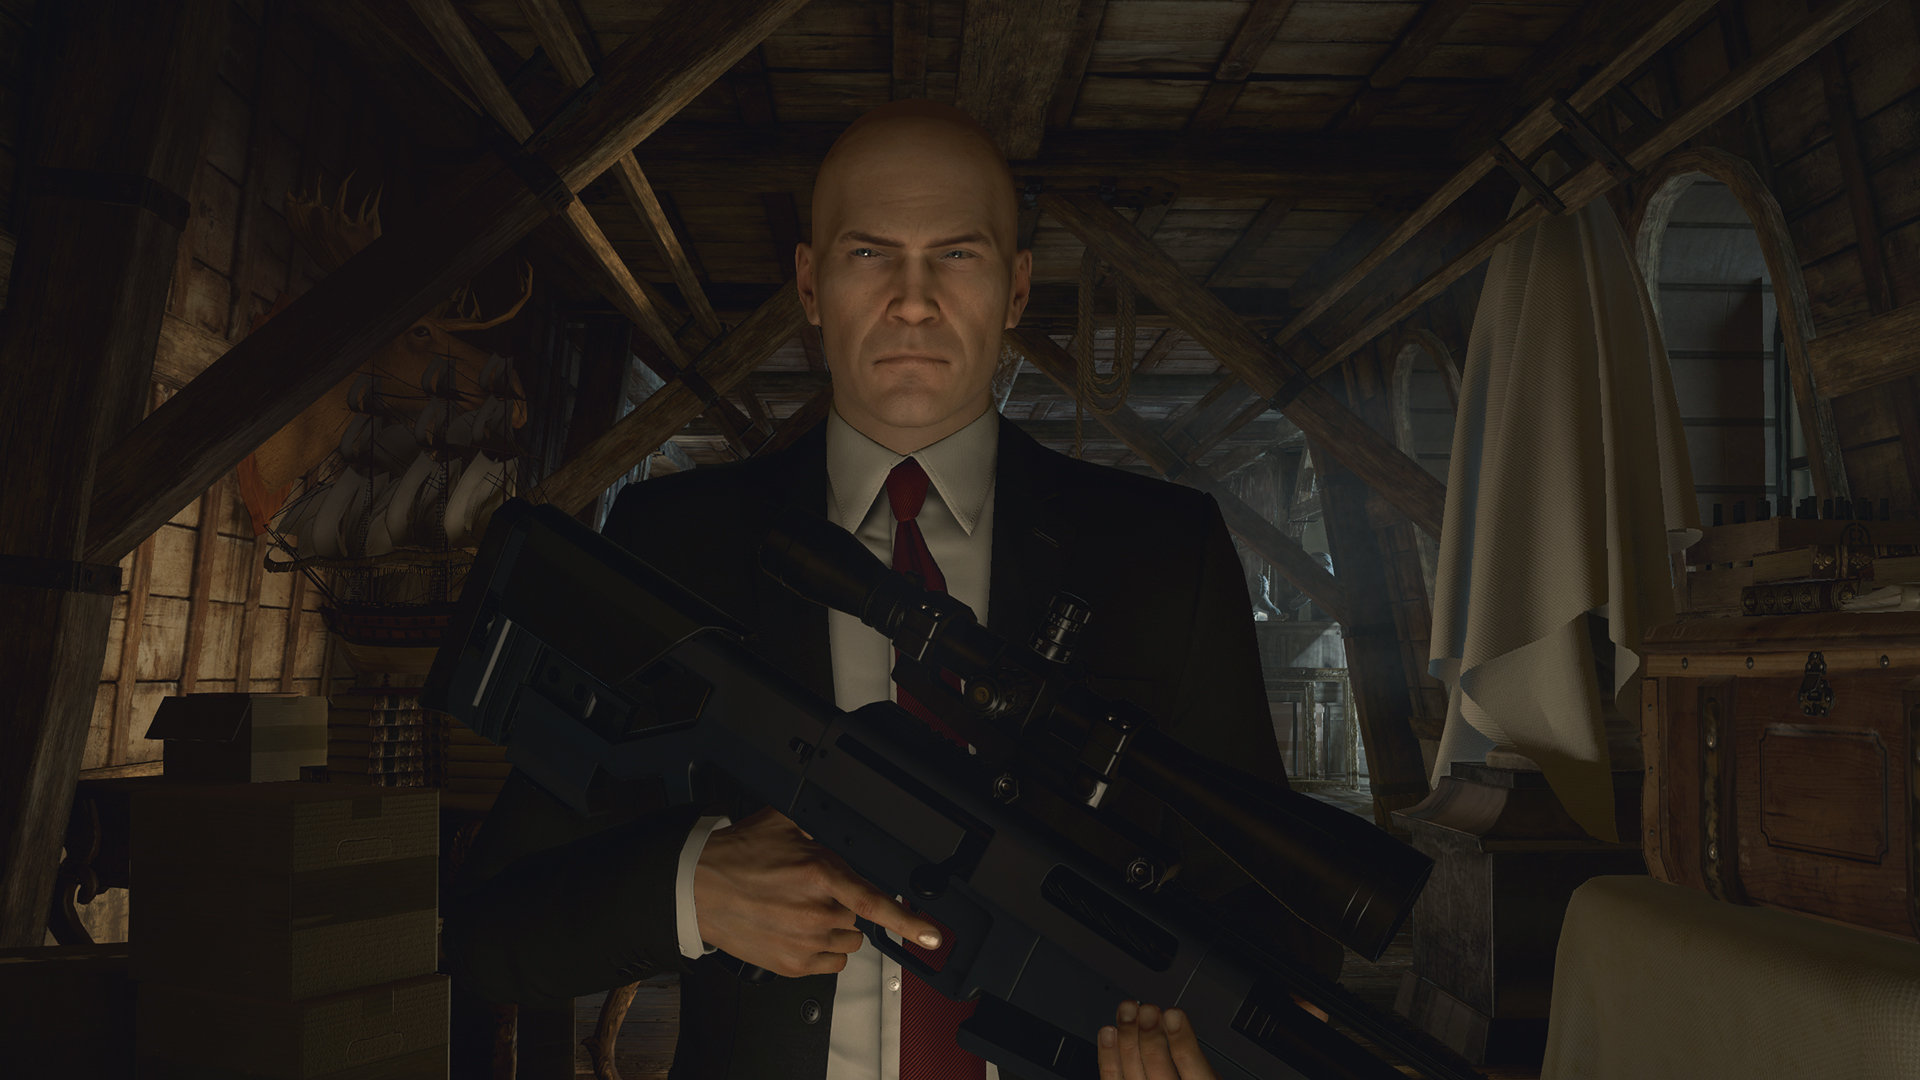 Agent 47 walks toward the camera, armed with a rifle, in a screenshot from Hitman.